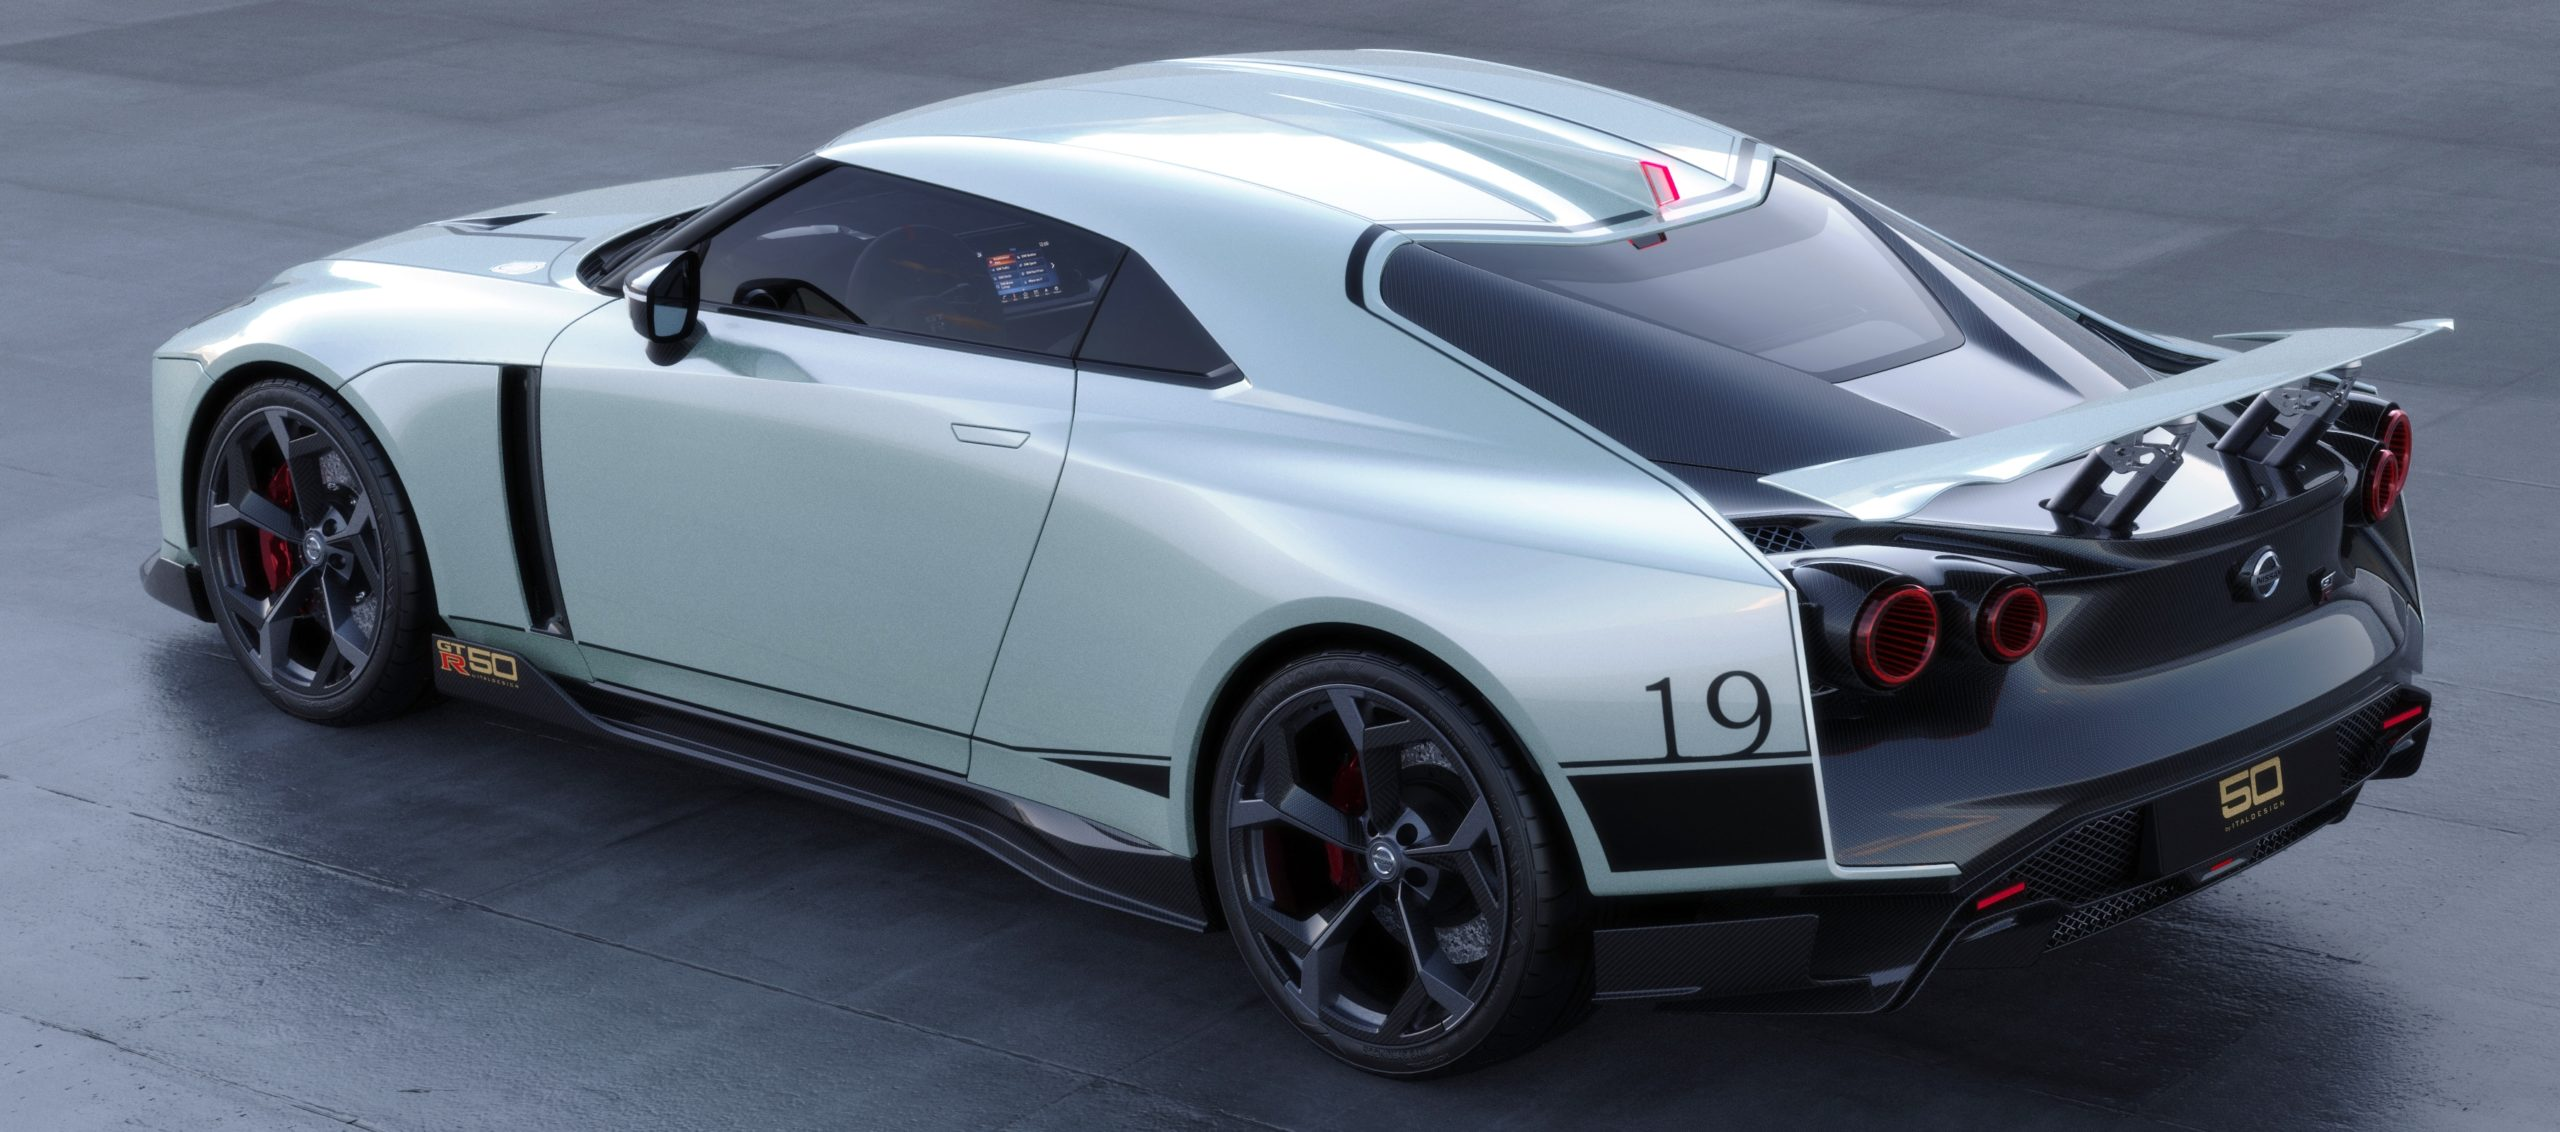 Italdesign Nissan GTR-50 top